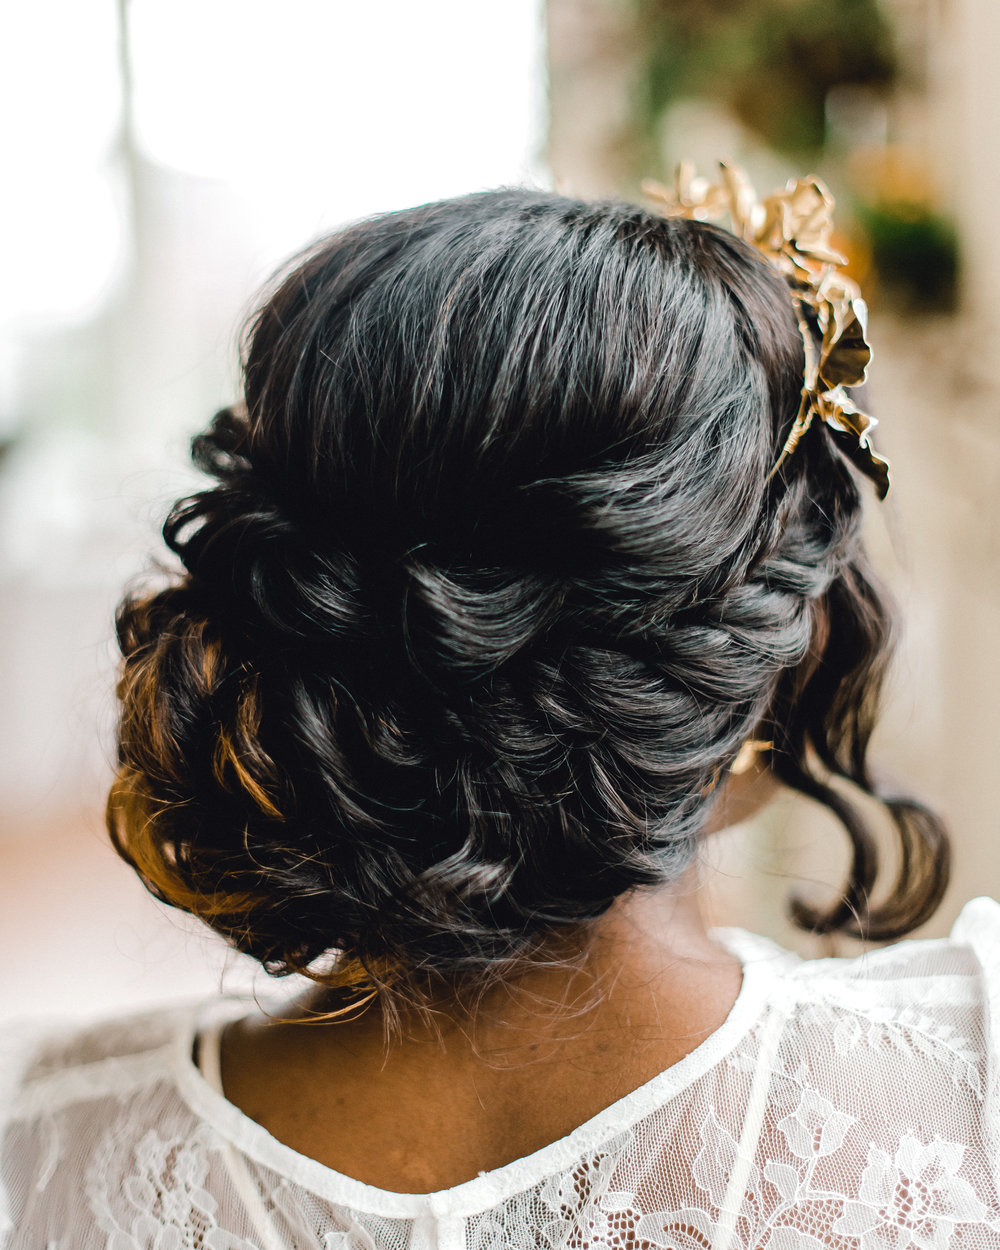 Wedding hair updo for Pablo Neruda enchanting garden styled shoot planned by Exhale Events. Get inspired at exhale-events.com!